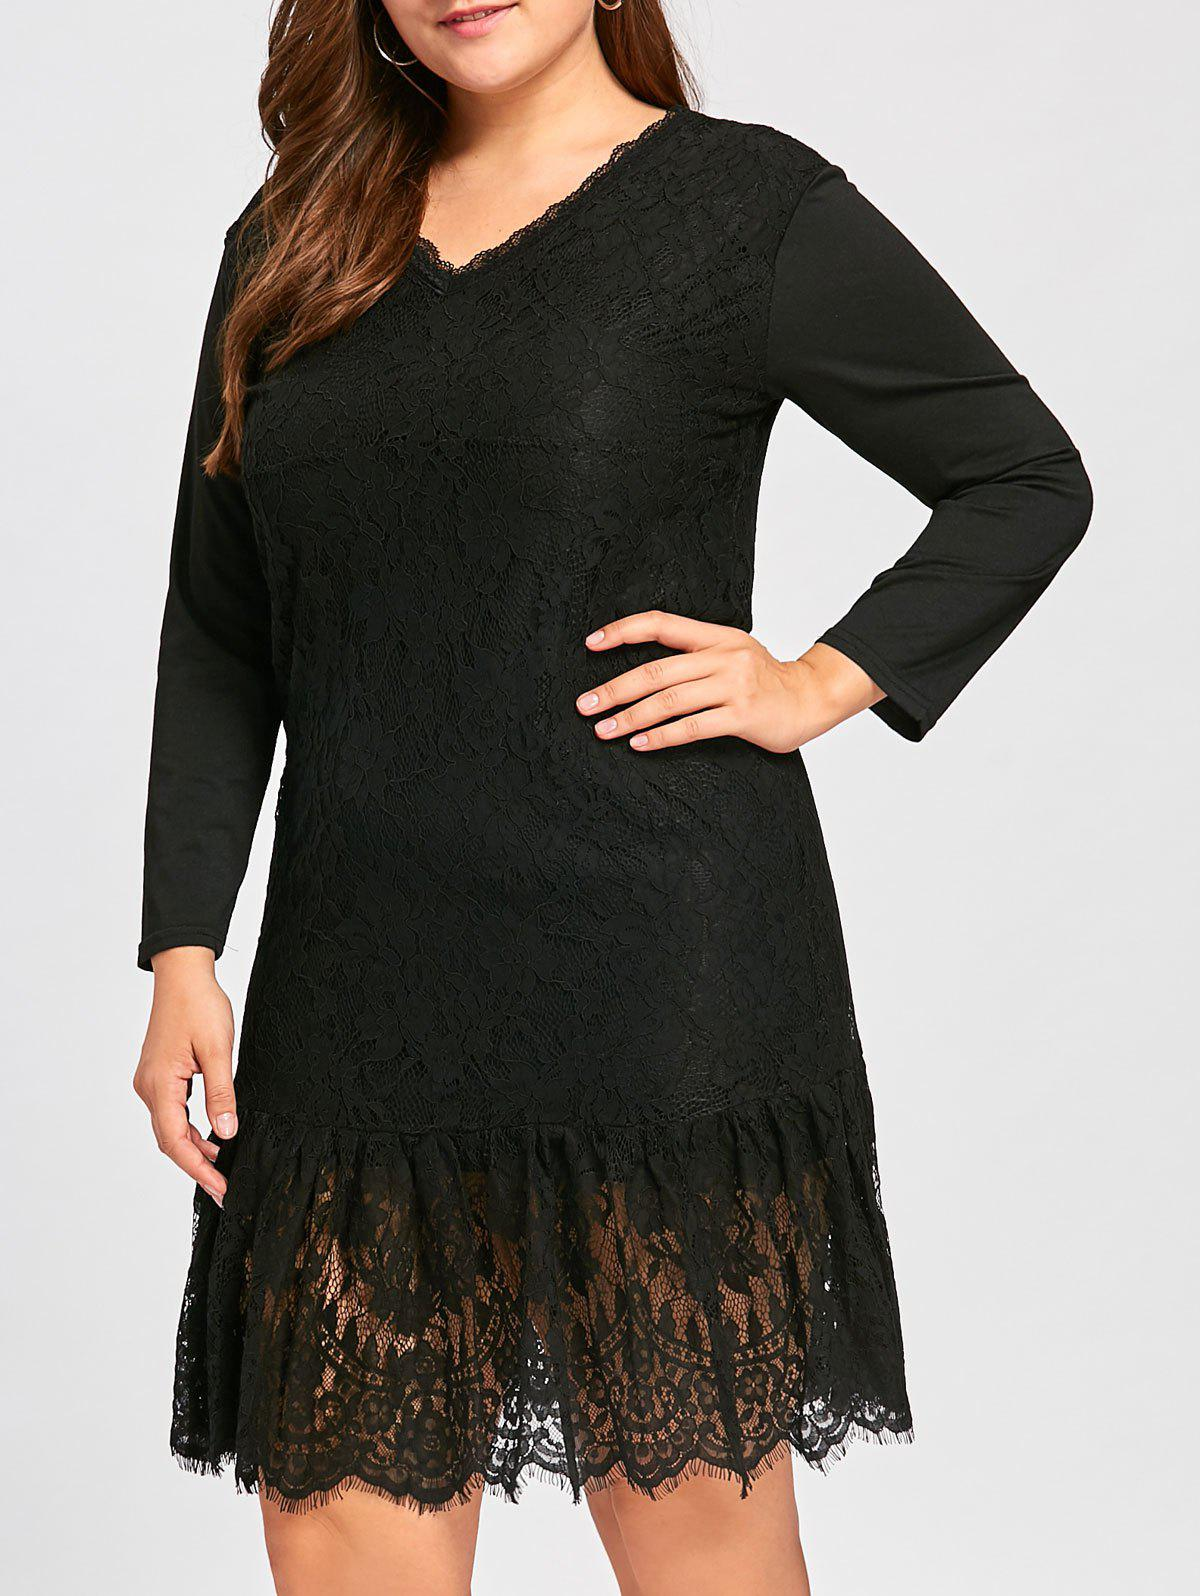 42837dc5017 Plus Size Lace Dress Long Sleeve - Gomes Weine AG